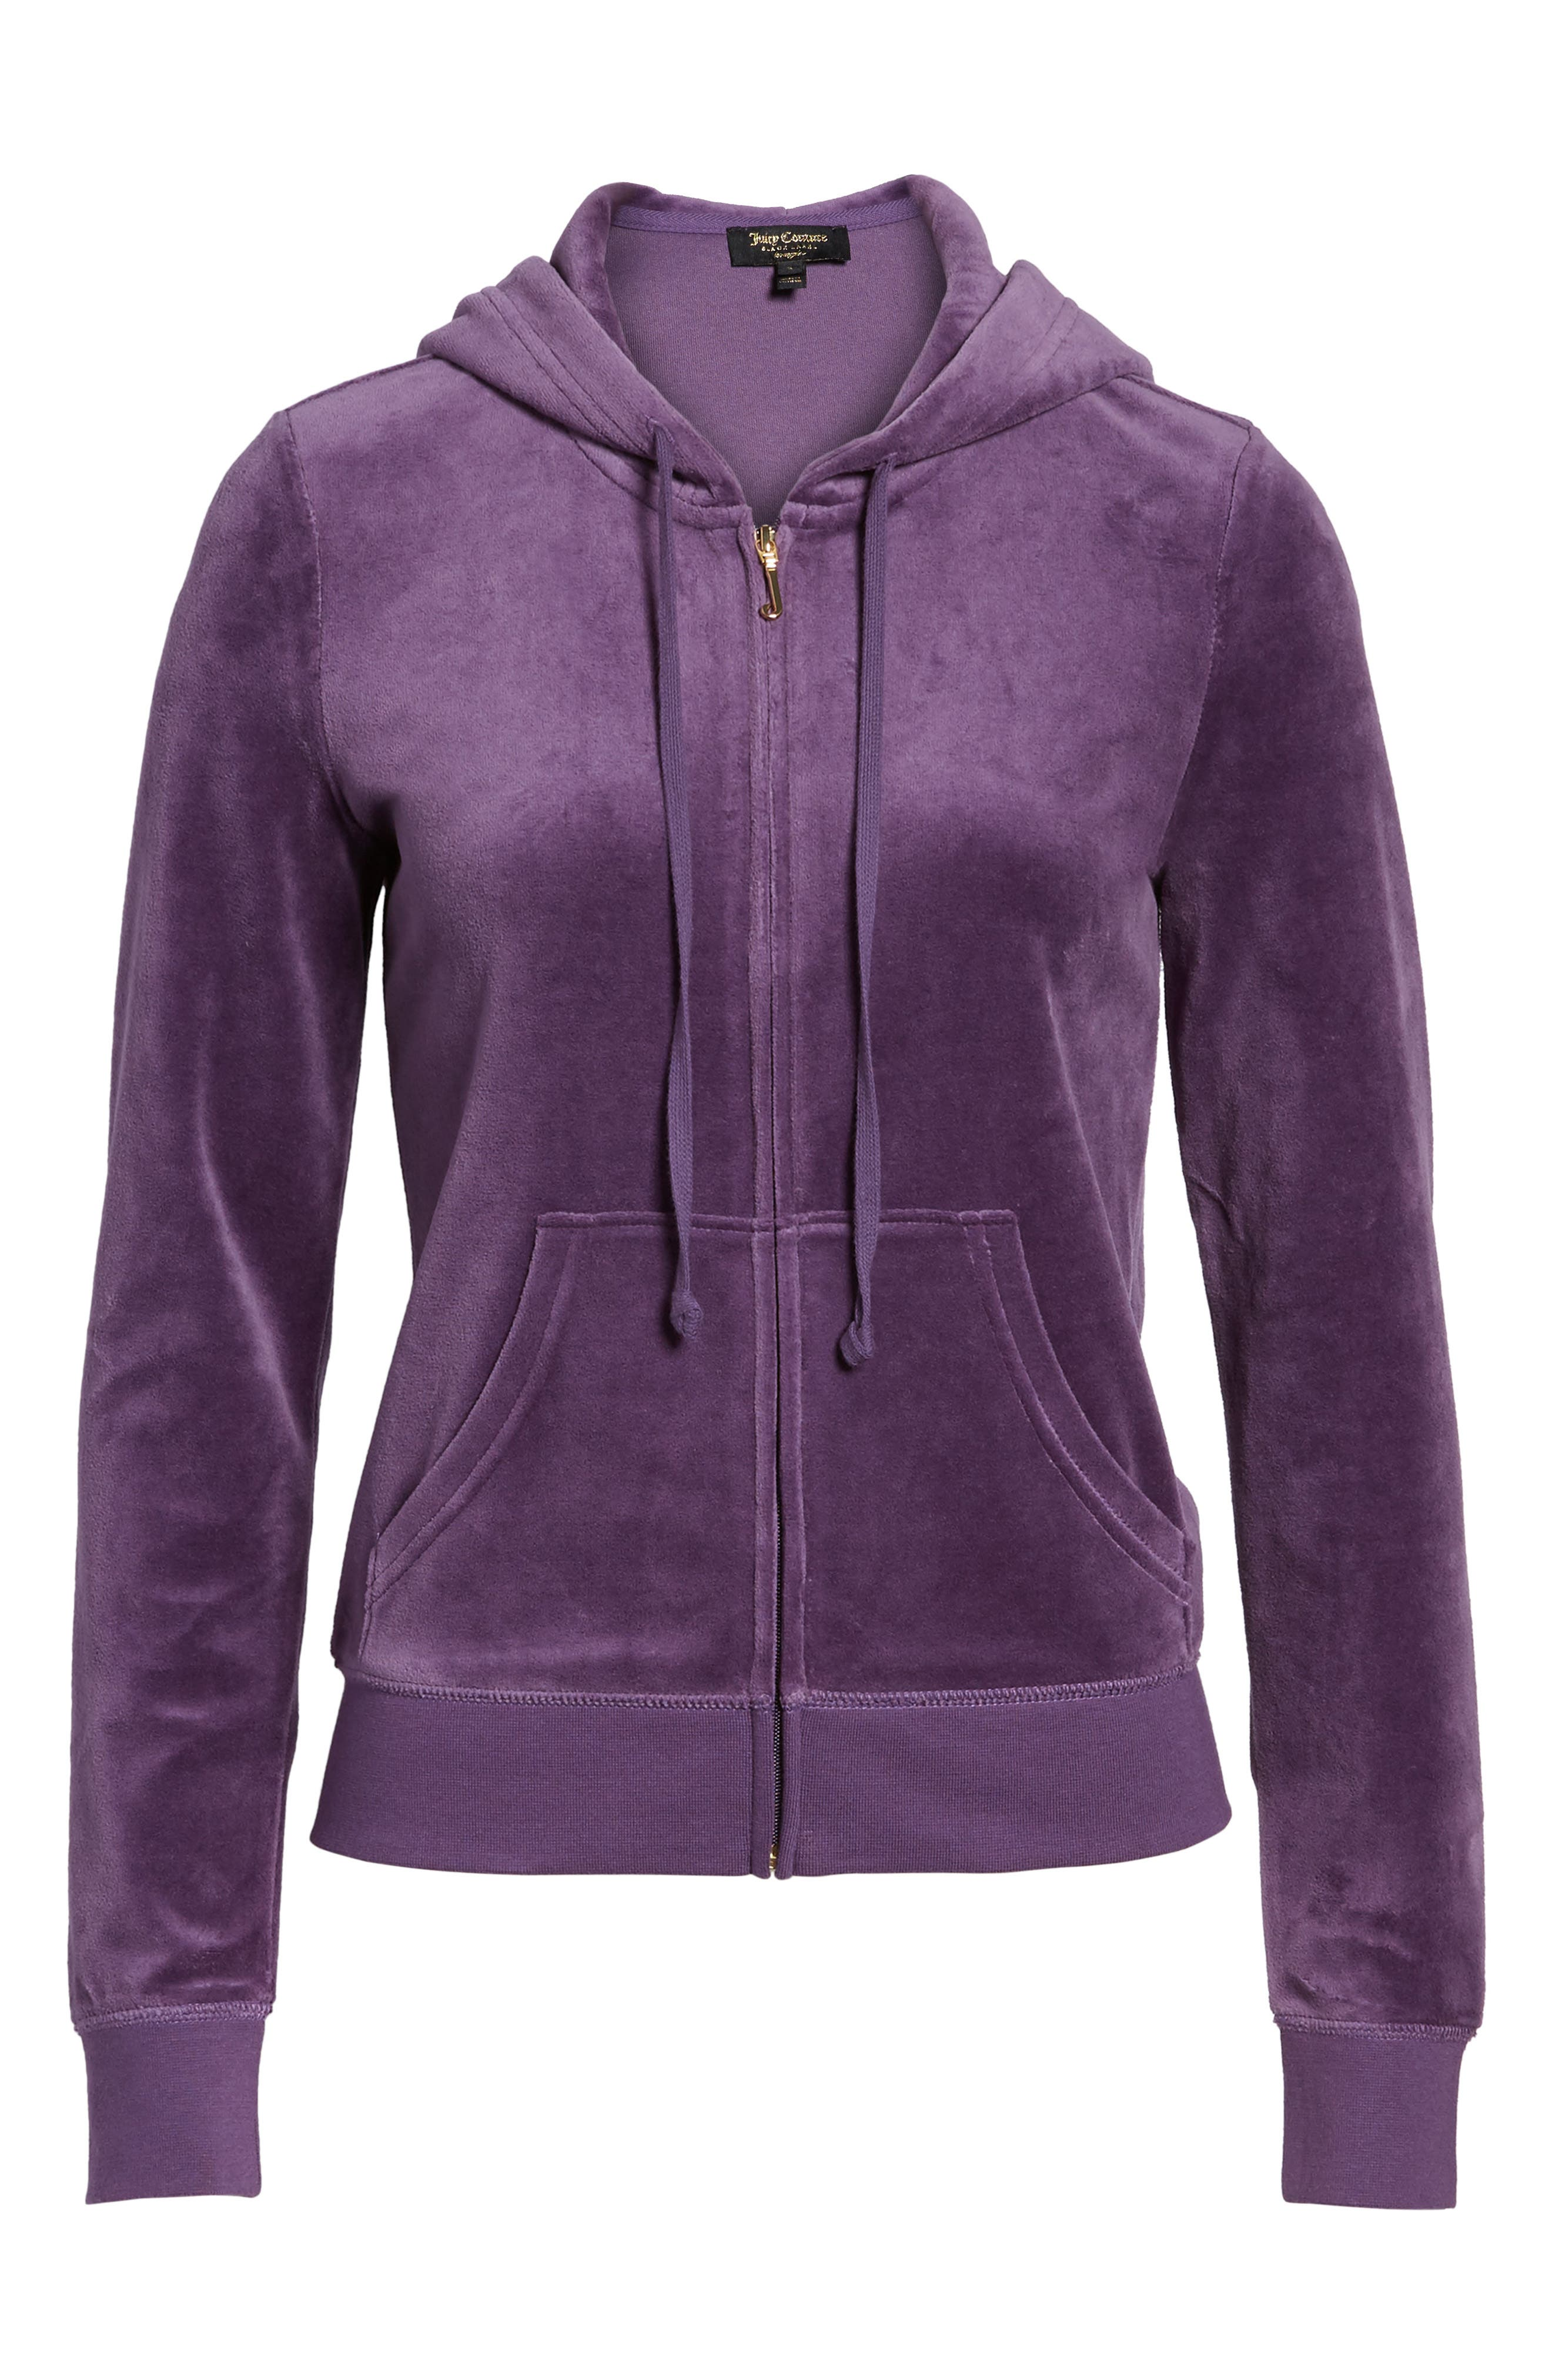 Robertson Velour Hoodie,                             Alternate thumbnail 7, color,                             511